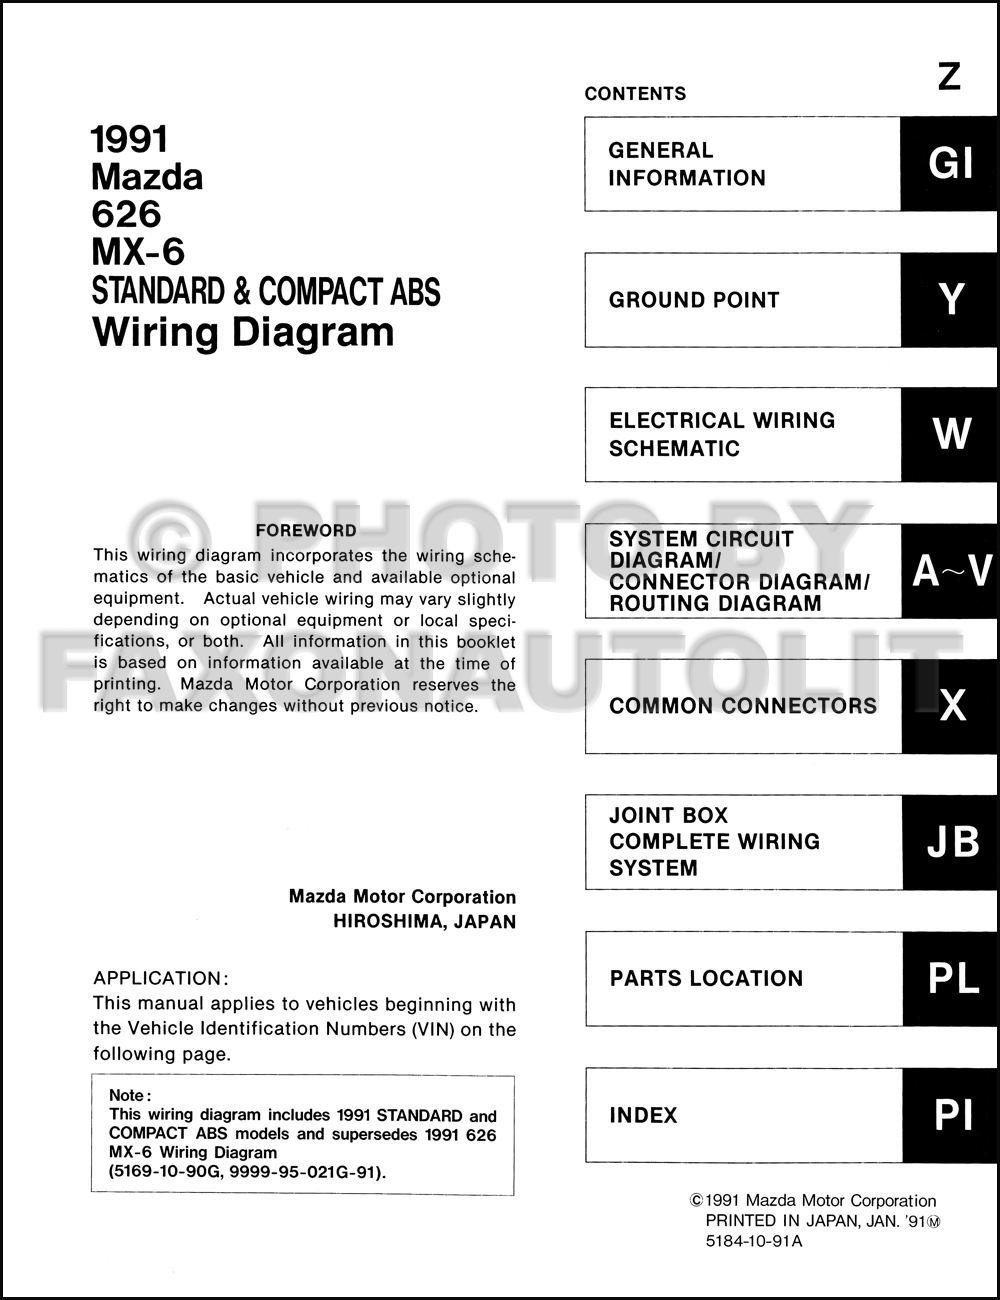 91 Mazda Miata Wiring Diagram Library 1994 Late 1991 626 And Mx 6 Manual Original 1999